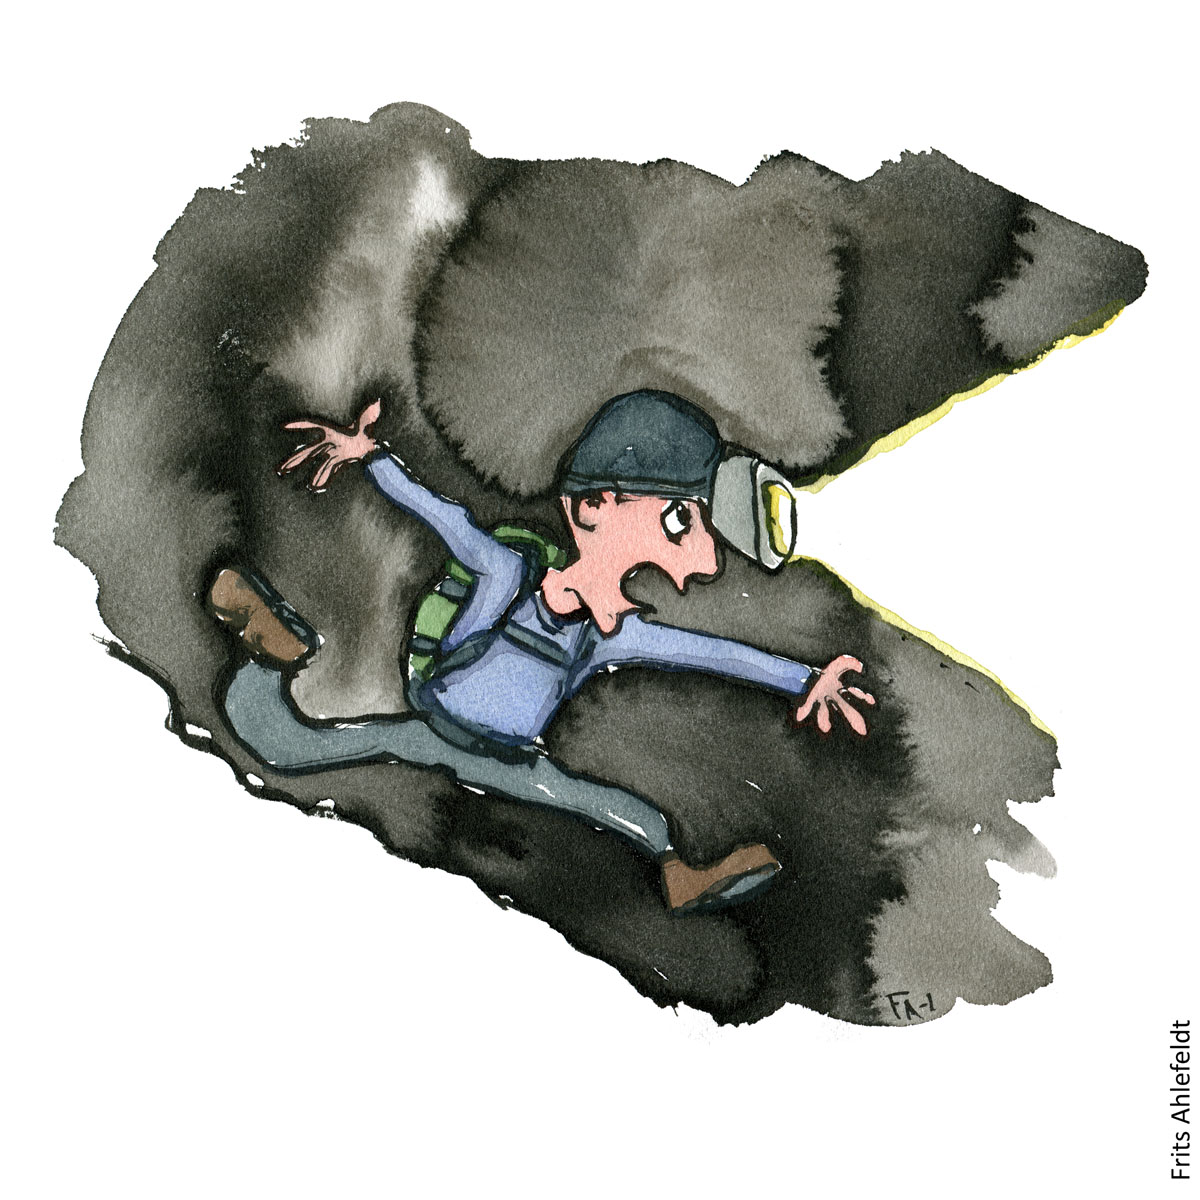 Drawing of a hiker with headlamp running in the dark. Hiking illustration handmade by Frits Ahlefeldt